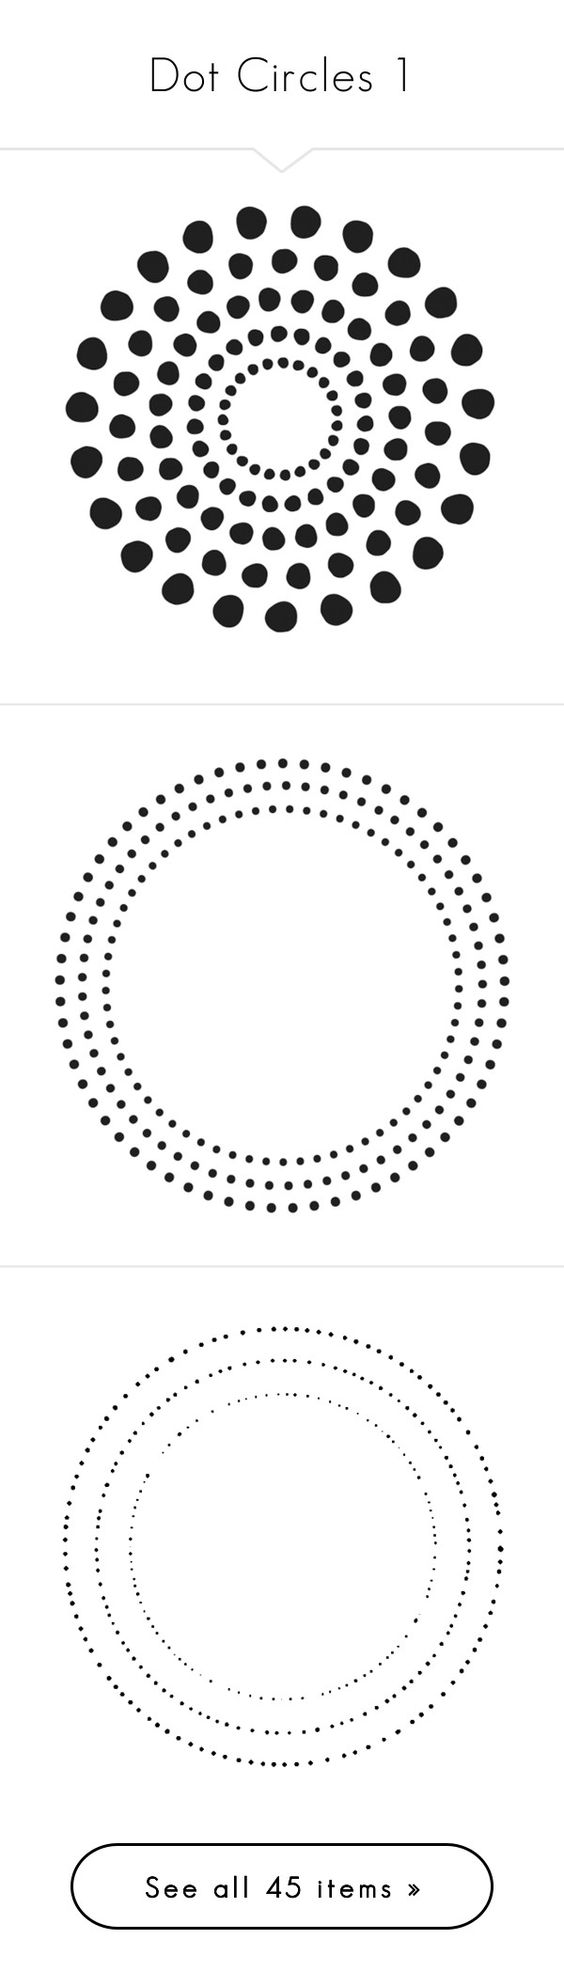 """Dot Circles 1"" by awsewell ❤ liked on Polyvore featuring round, circles, circle, circular, dots, backgrounds, effects, filler, overlays and borders"